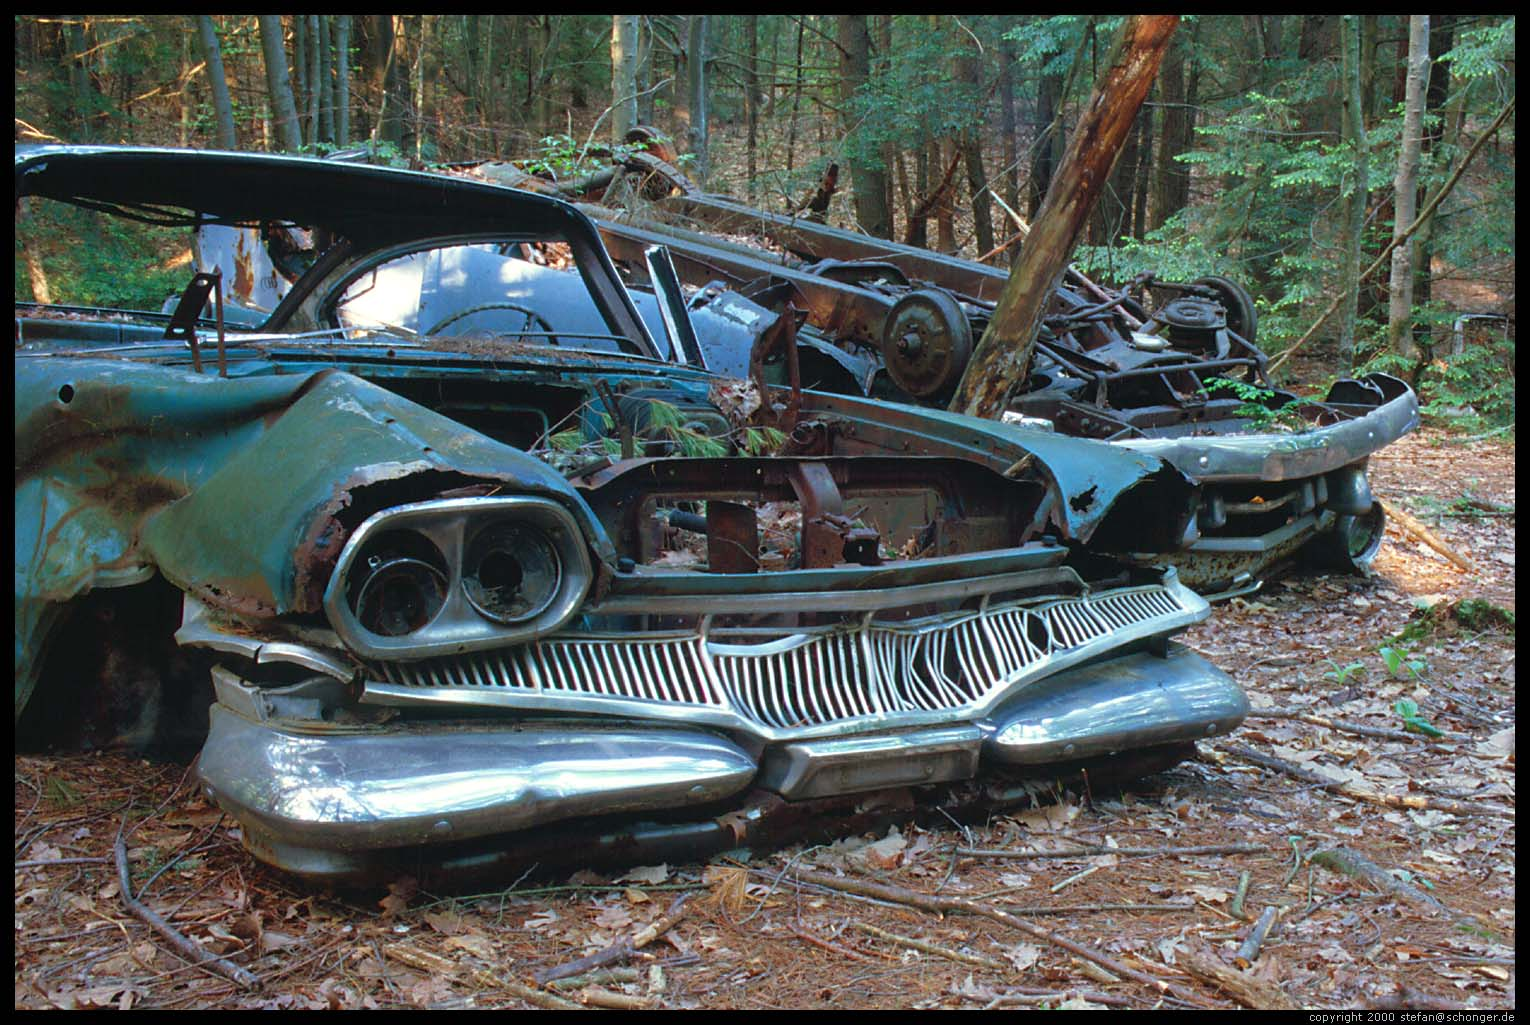 0385 - Junk Cars in Forest, Amherst, MA, May 2000